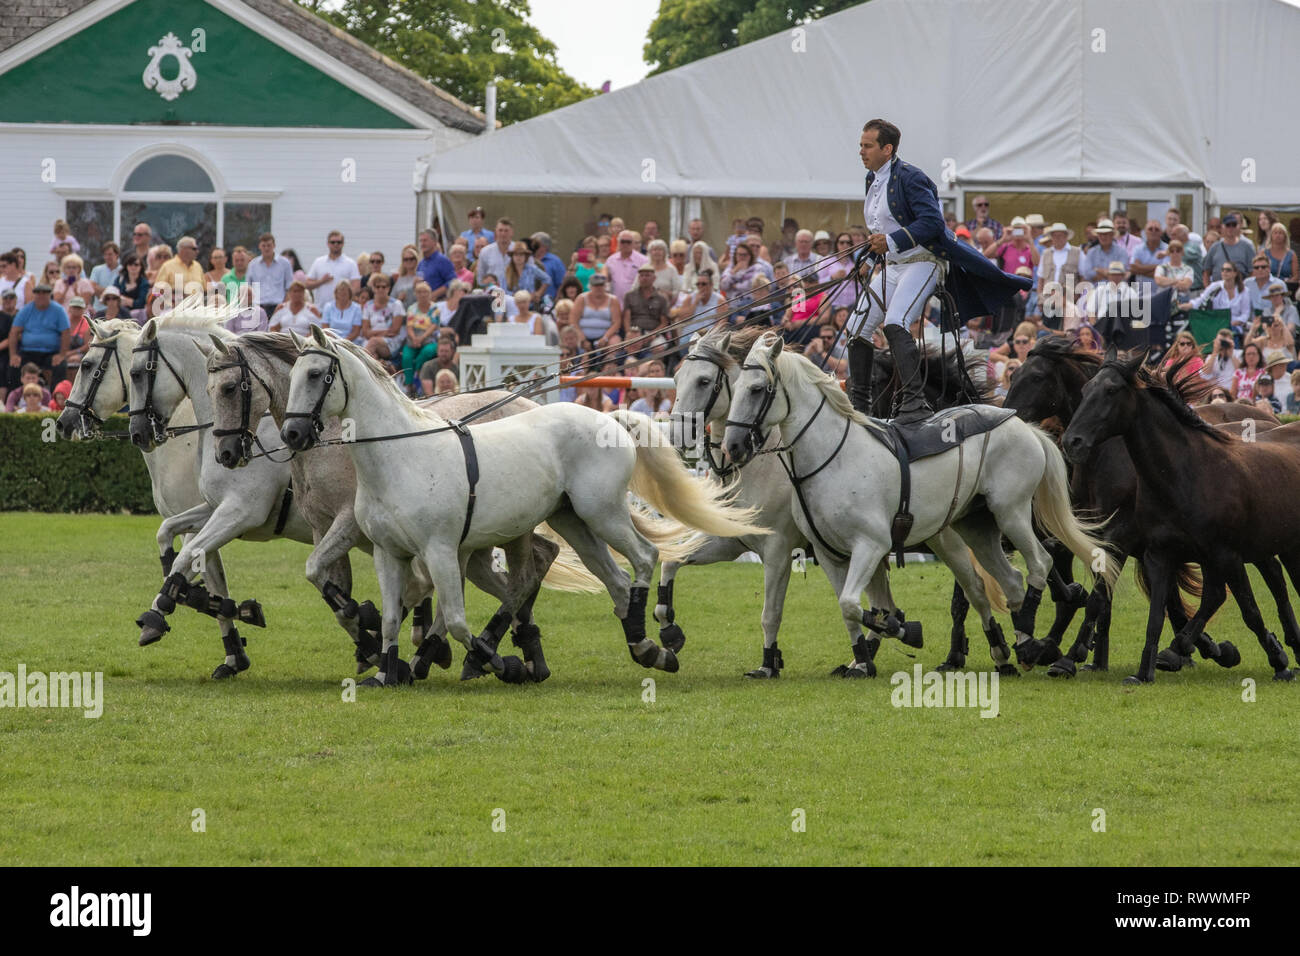 Harrogate, North Yorkshire, UK - July 12th, 2018: French horse trainer Lorenzo performing with his Horses at the Great Yorkshire Show on 12th July 201 - Stock Image